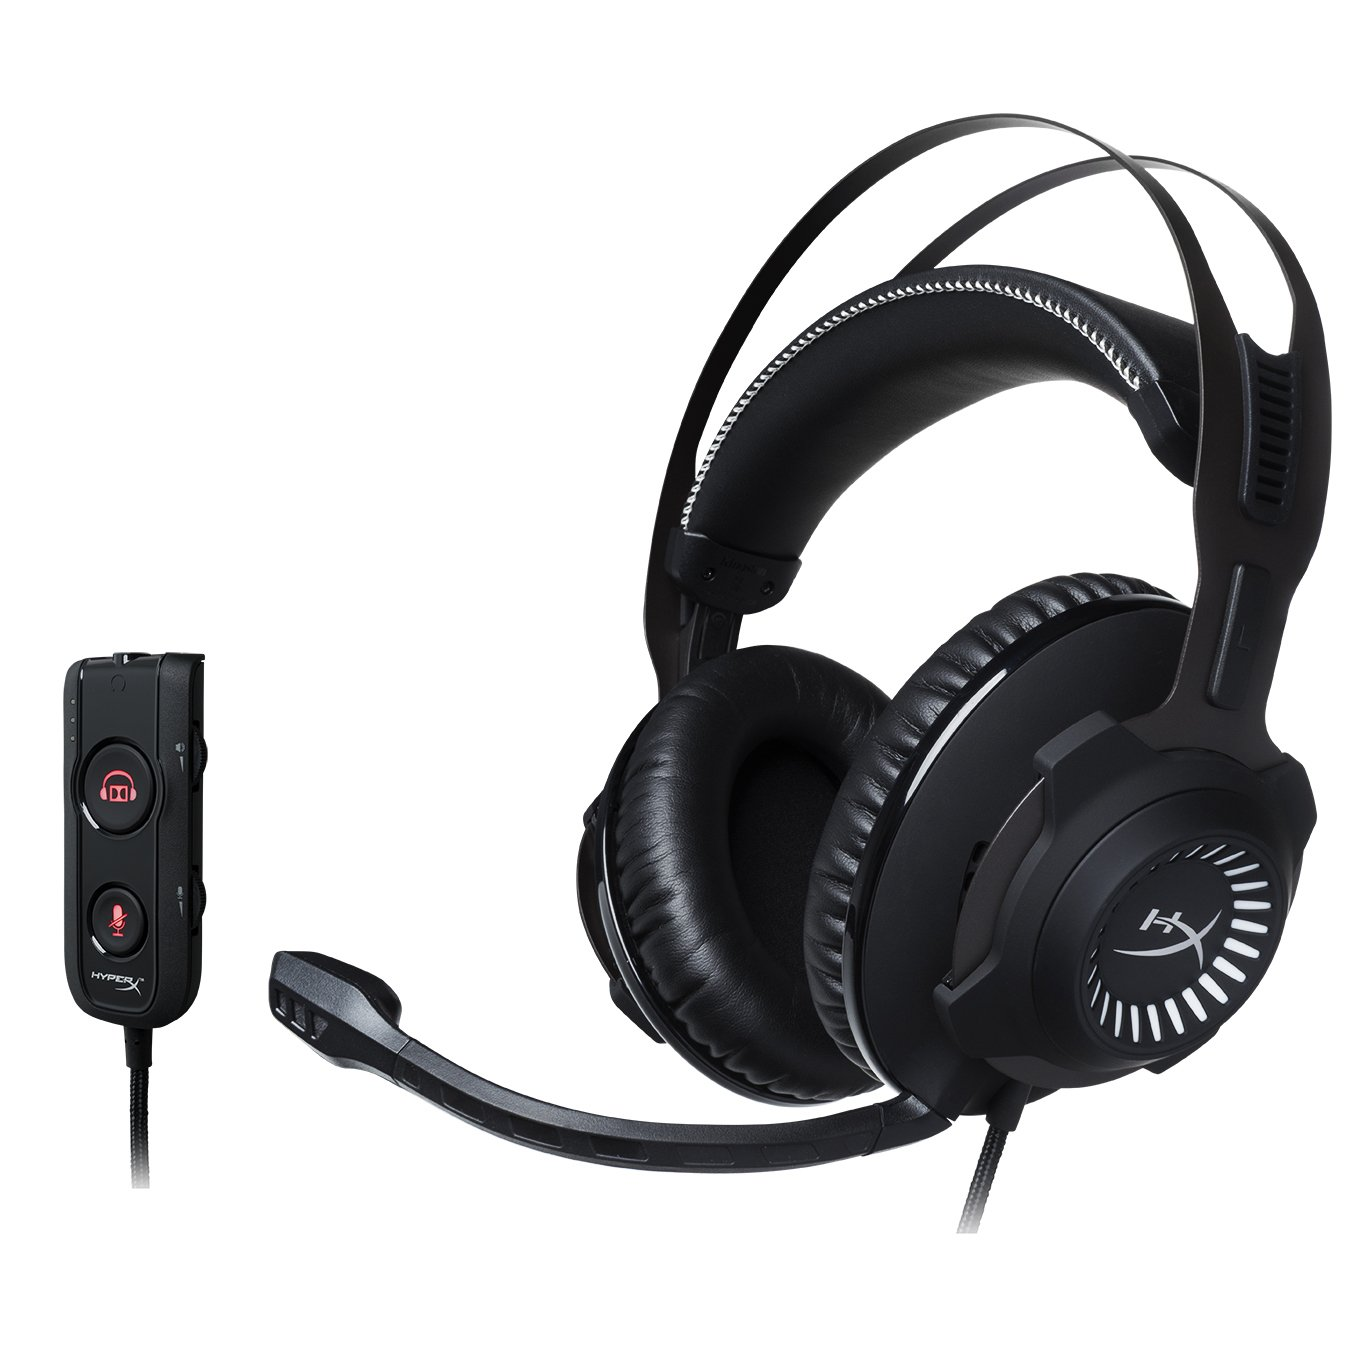 HyperX Cloud Revolver S - Gaming Headset with Dolby 7.1 SurroundSound - Steel Frame - Signature Memory Foam - Premium Leatherette - Detachable noise-cancellation microphone